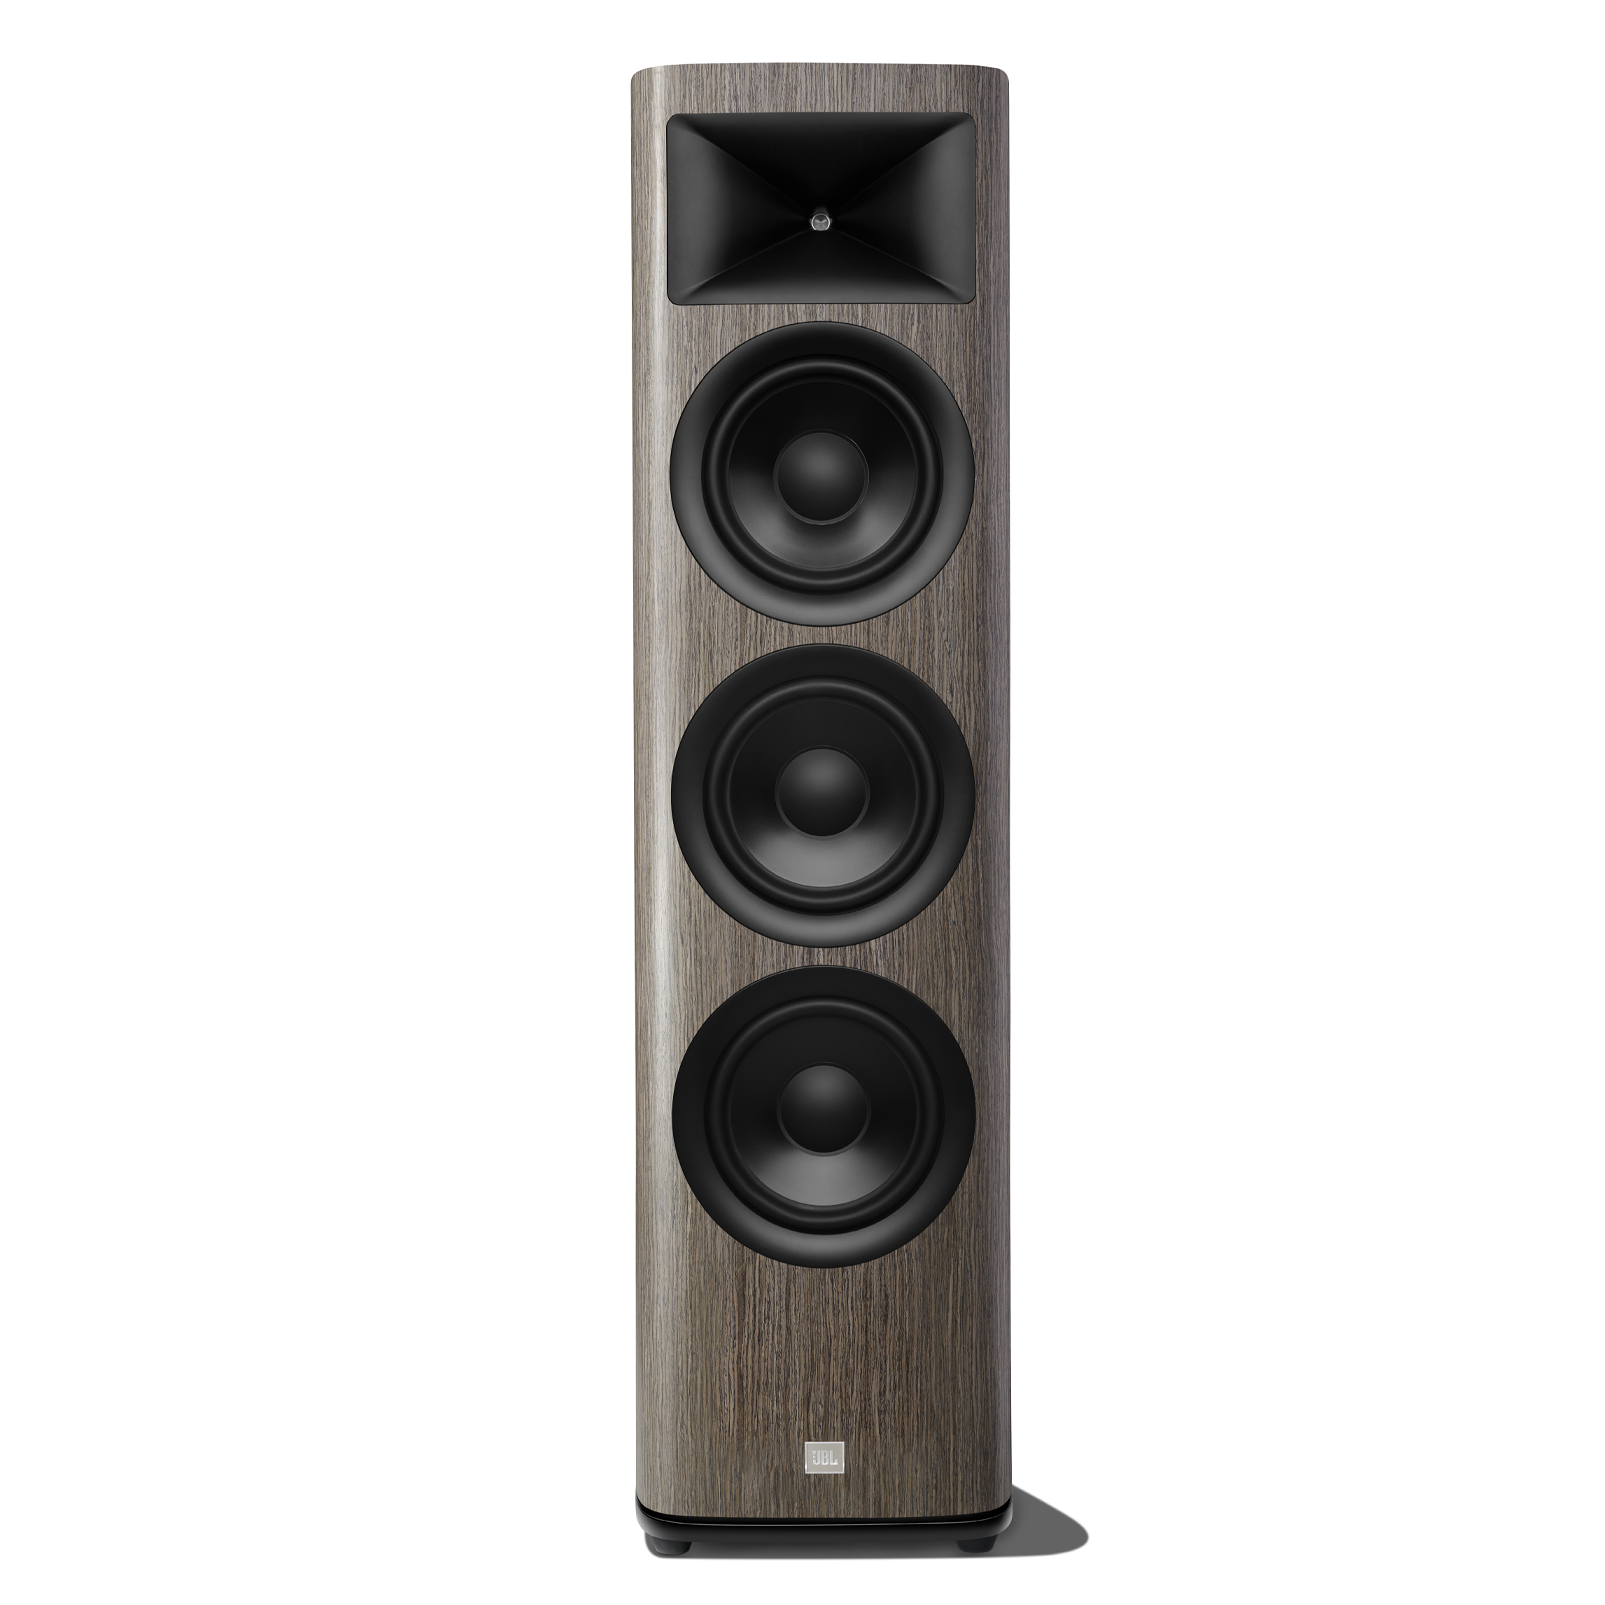 HDI-3800 - Grey Oak - 2 ½-way Triple 8-inch (200mm) Floorstanding Loudspeaker - Hero